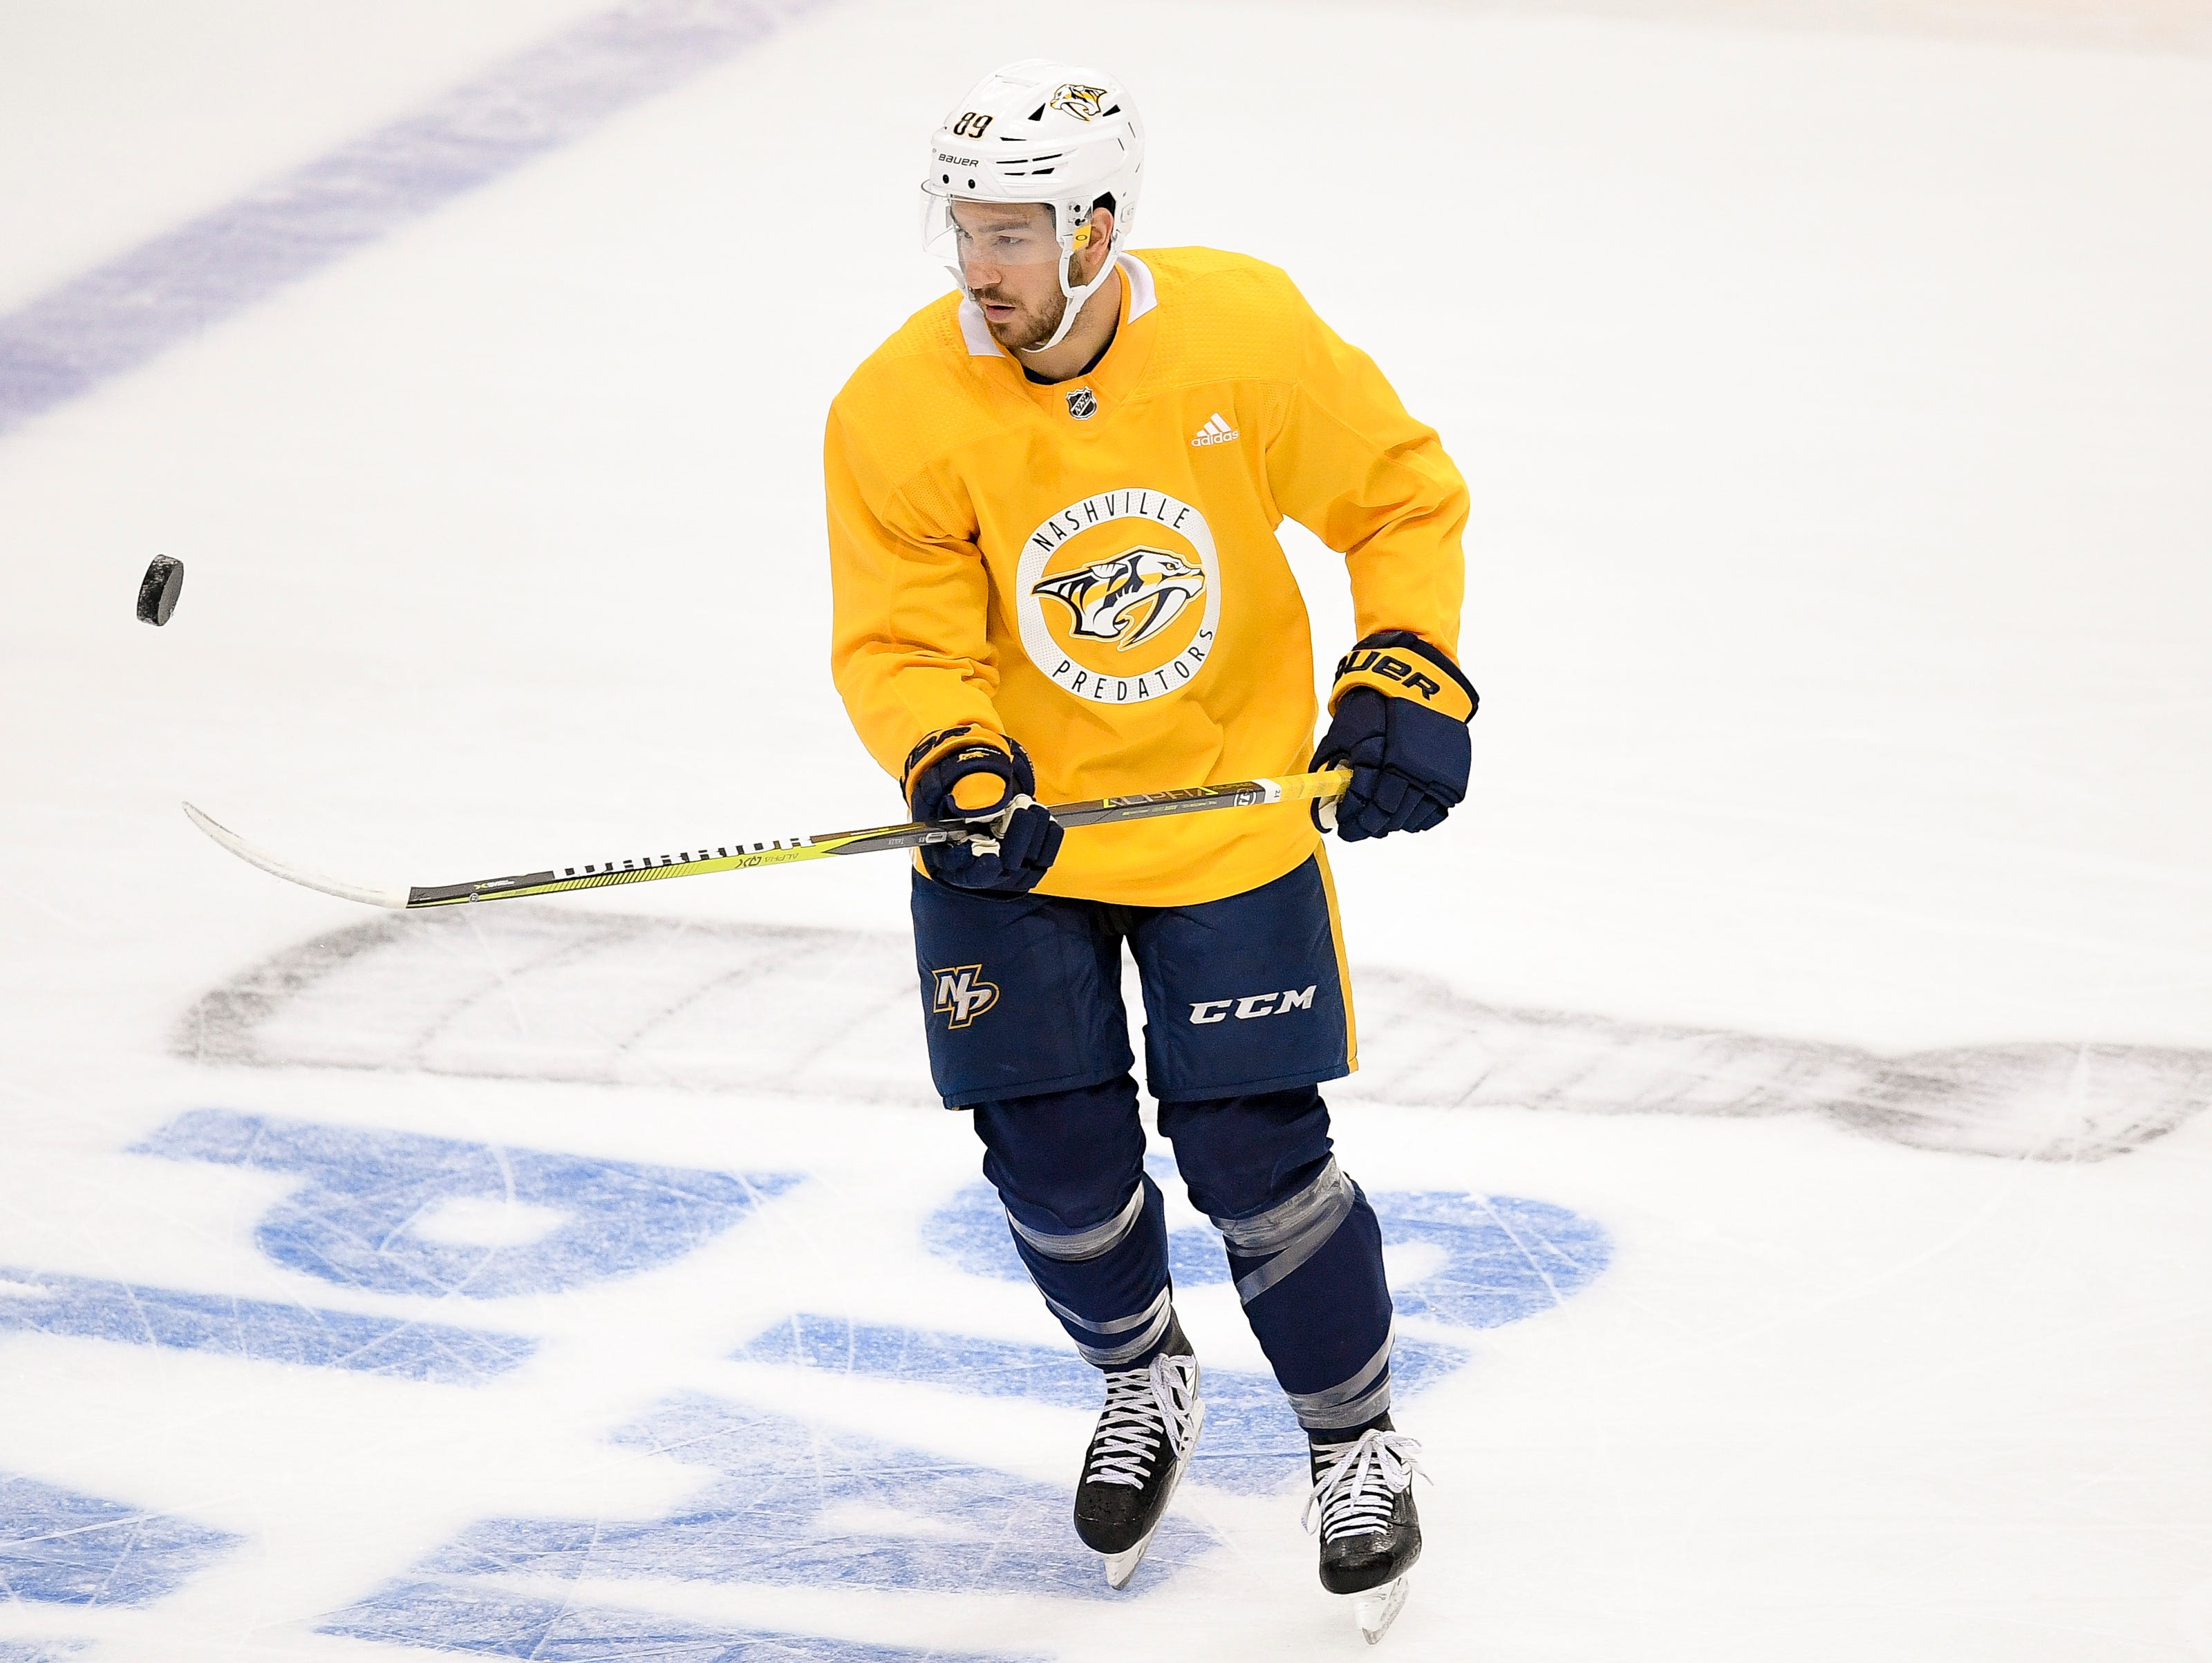 Nashville Predators center Frederick Gaudreau (89) flips a puck during practice before the divisional semifinal game at the American Airlines Center in Dallas, Texas., Monday, April 15, 2019.